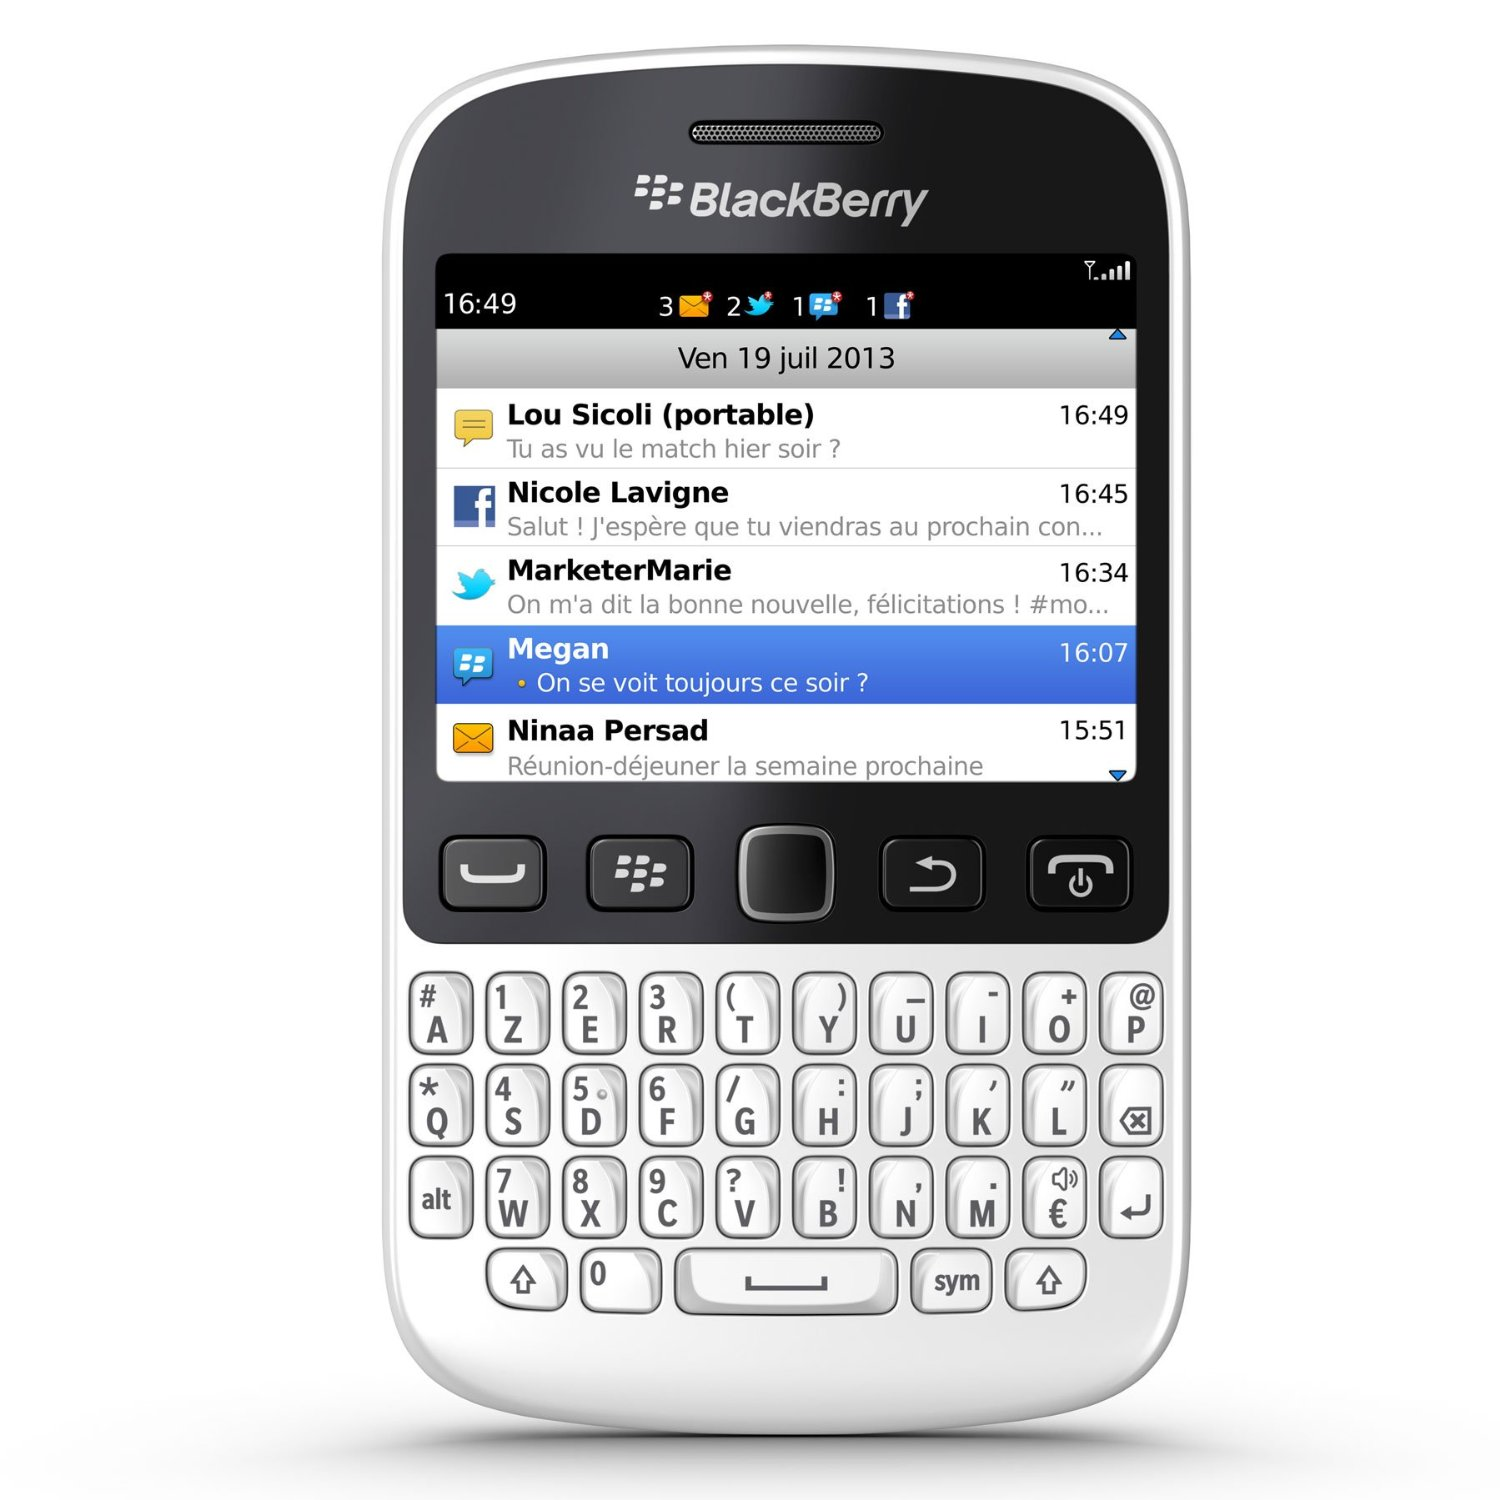 BlackBerry 9720 Black